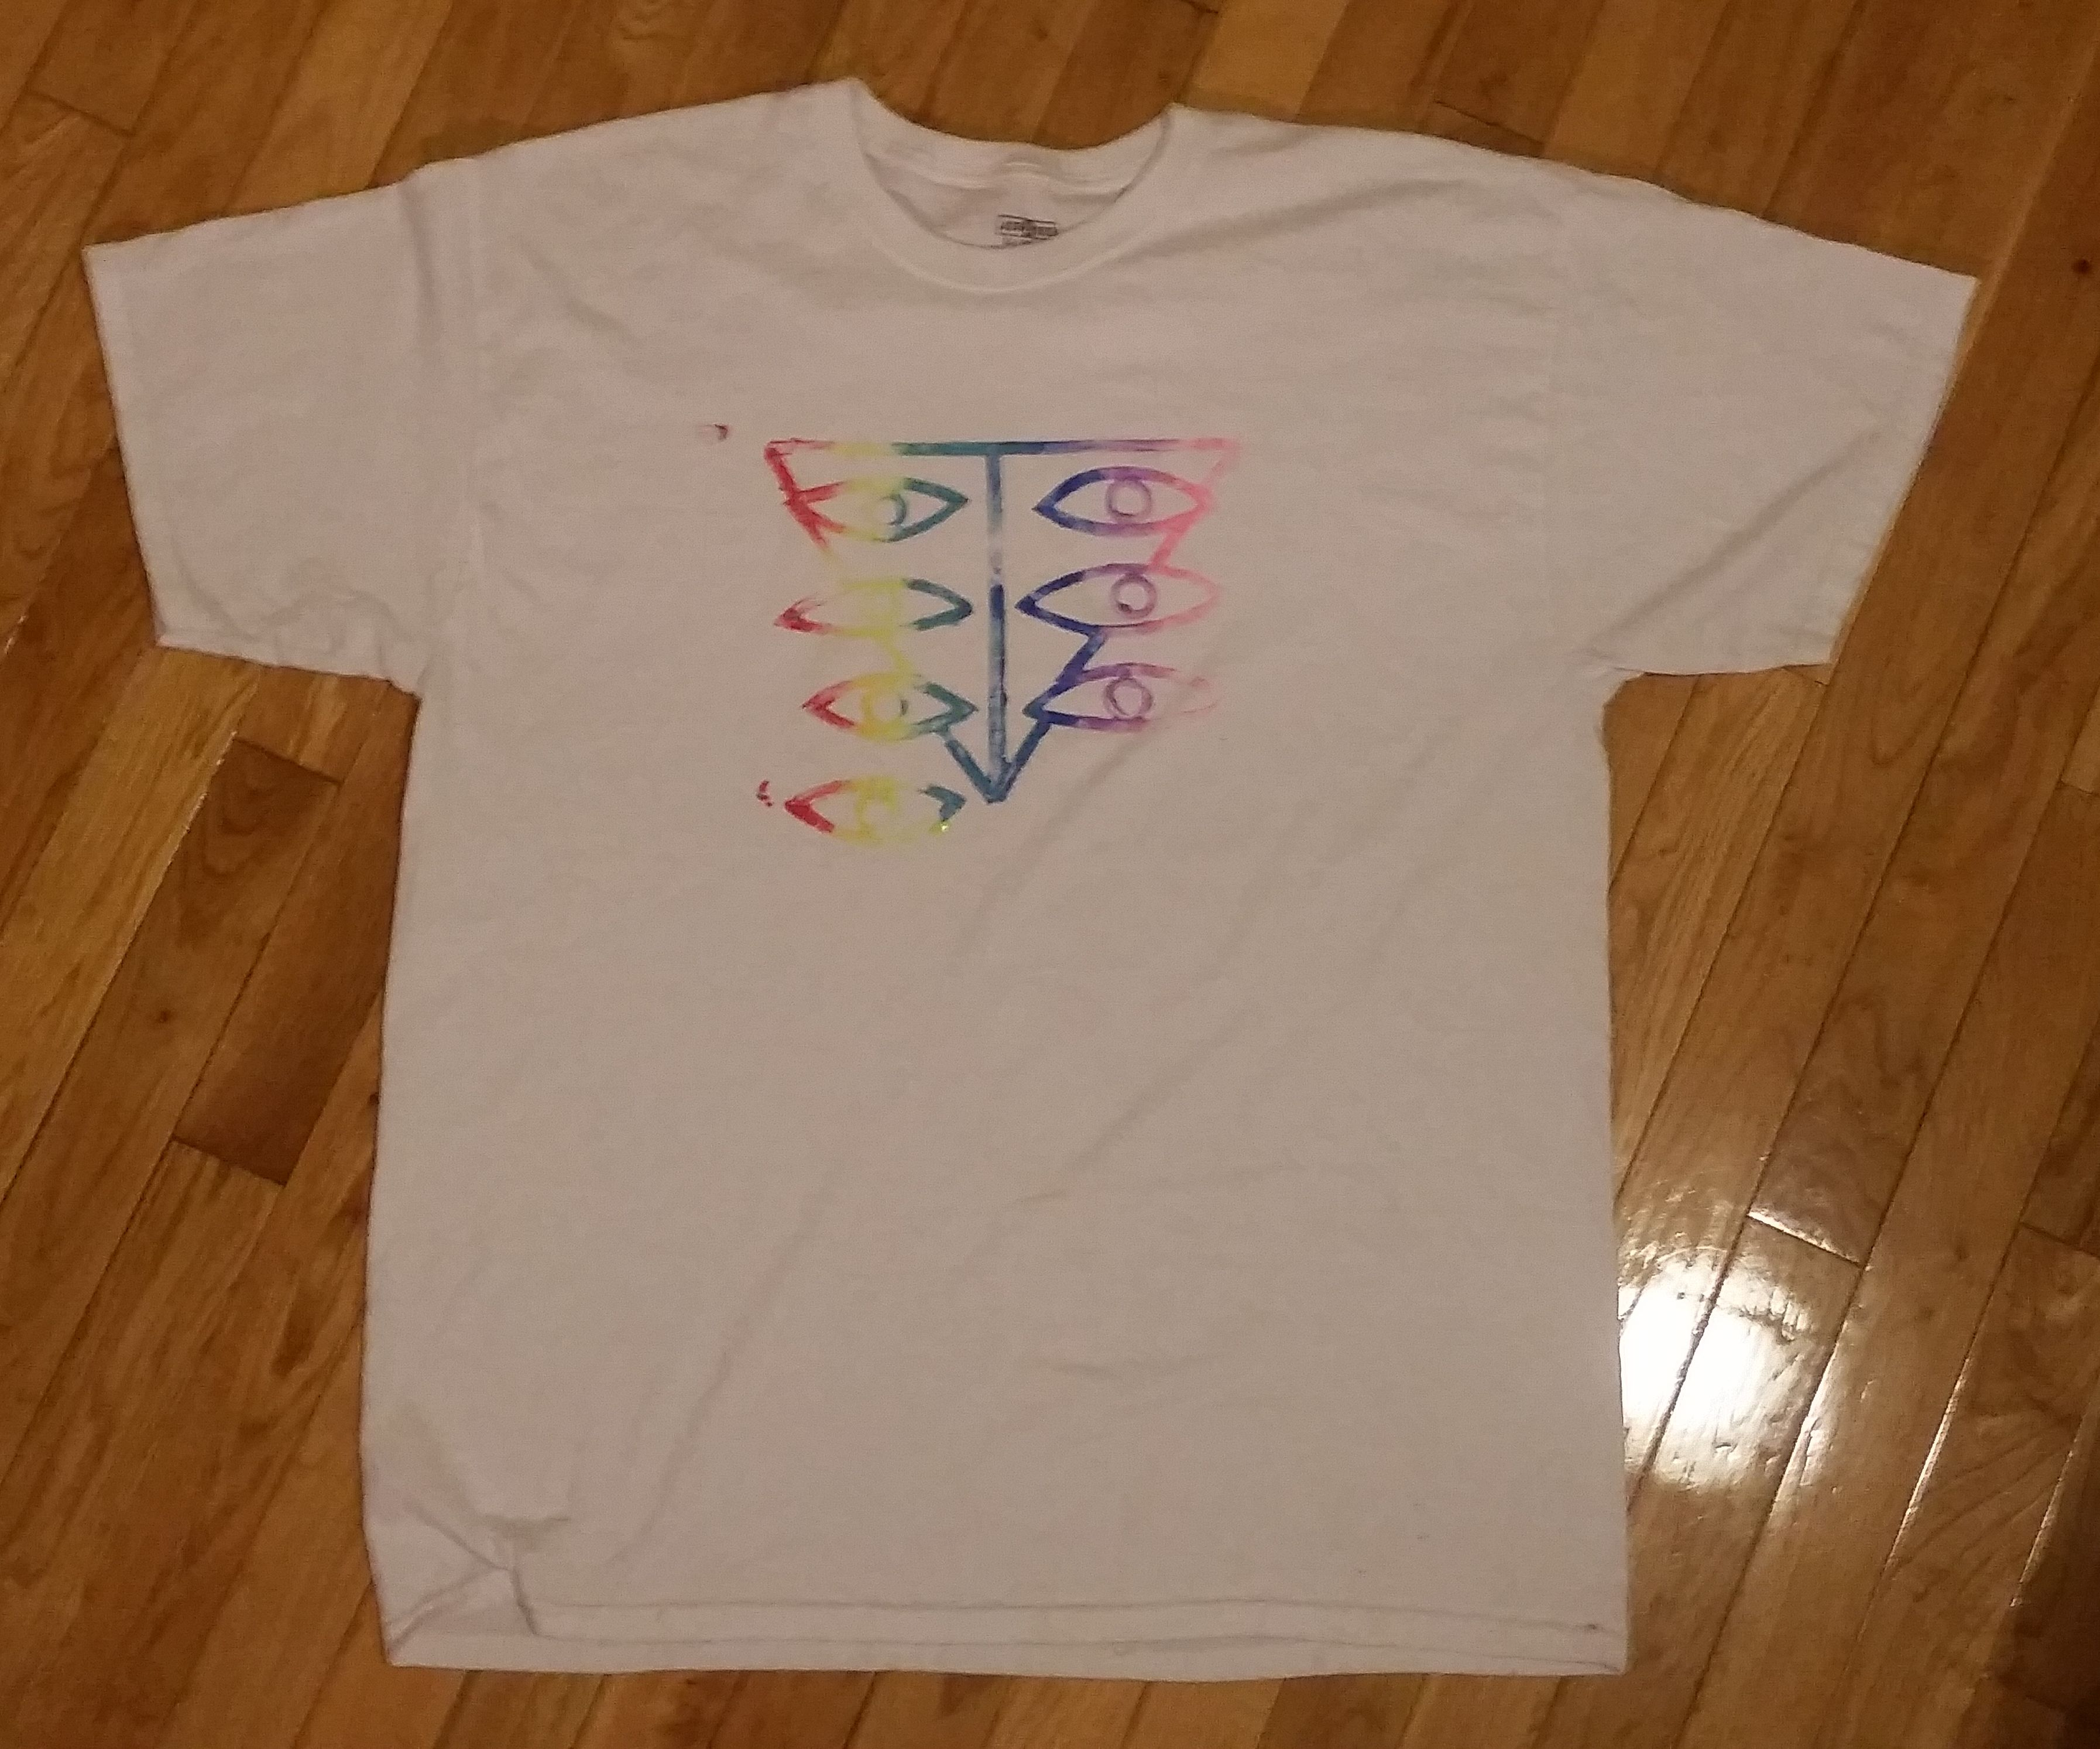 Foam T-Shirt Stamp: For Simple Illustrations That Are Difficult to Stencil